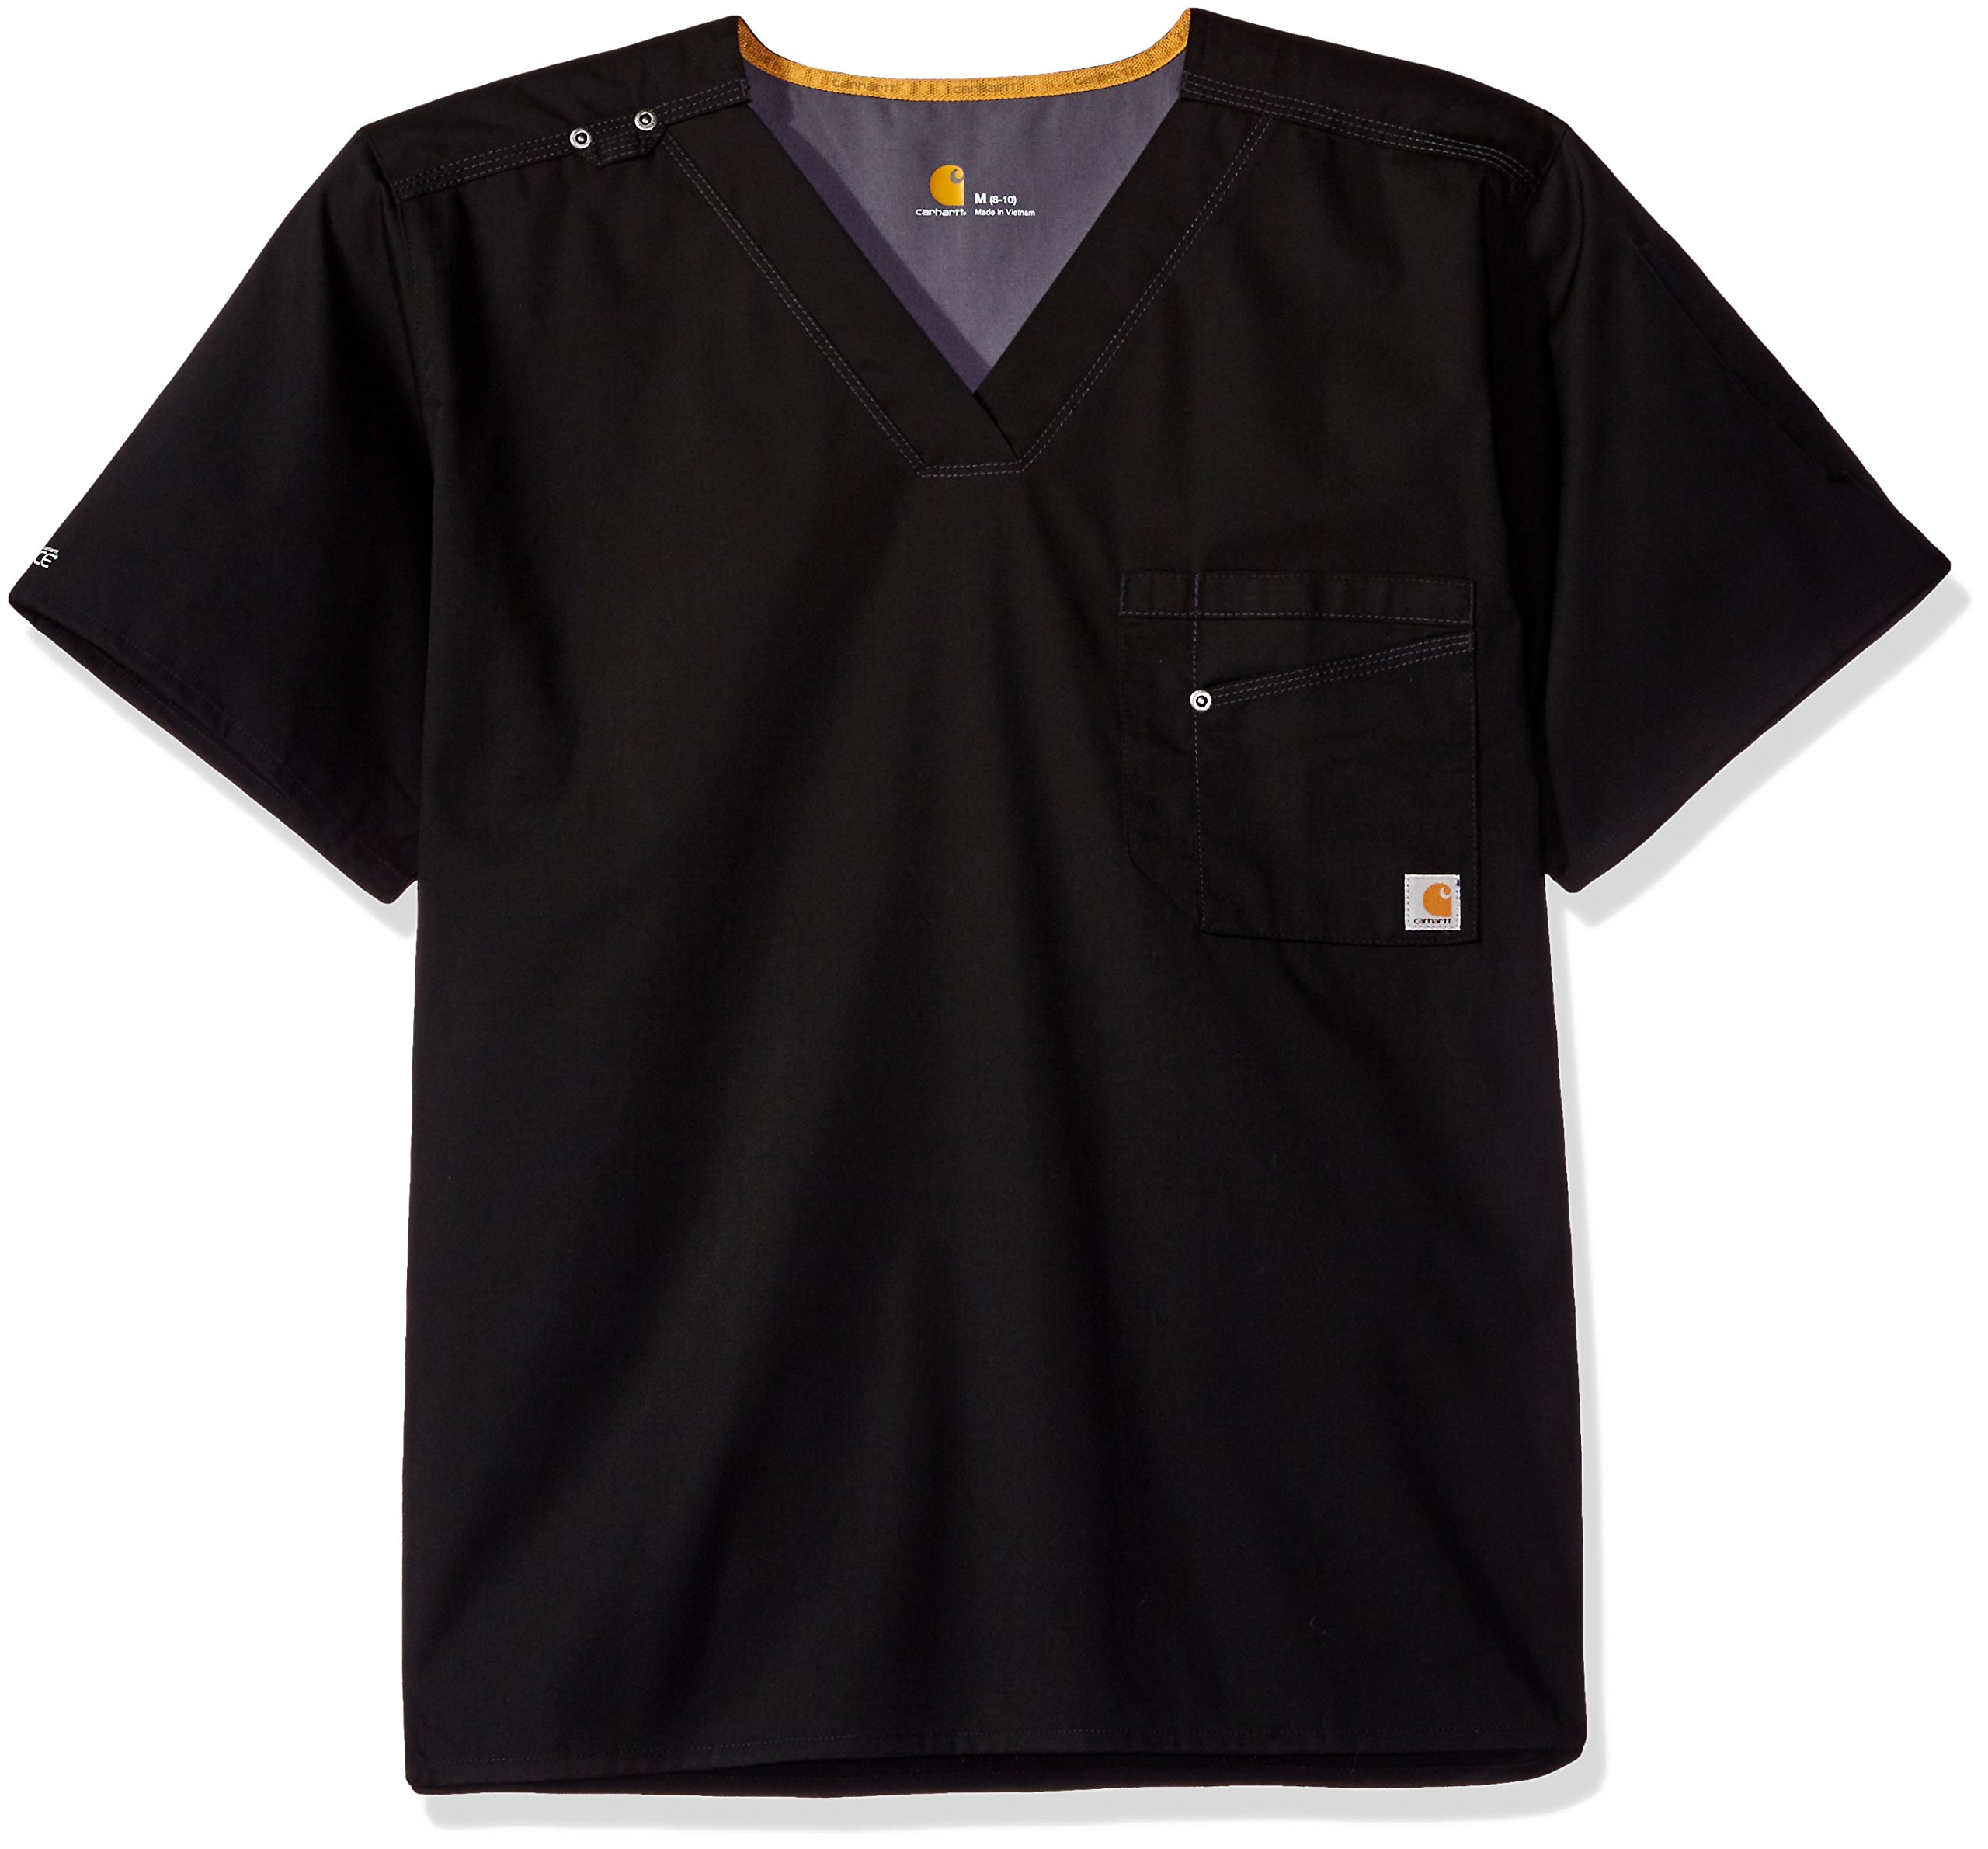 Carhartt Men's Rockwall V-Neck Scrub Top, Black, Medium